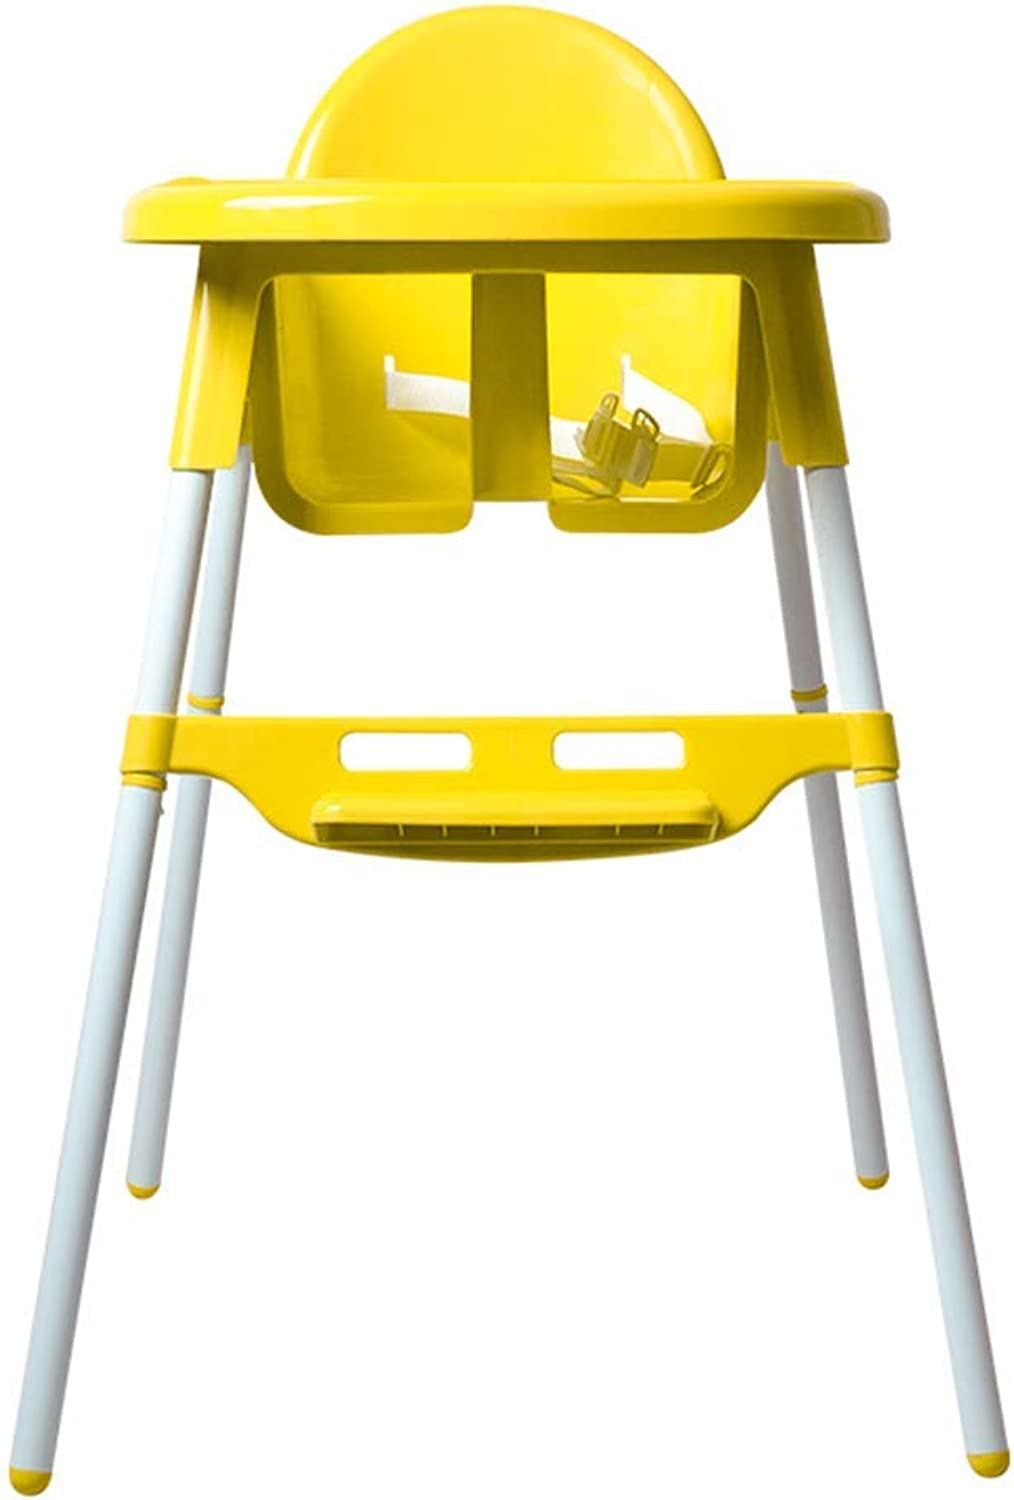 JZX Baby High Chair, Dinette, Large Multi-Functional Adjustable Plastic Multifunctional Chair